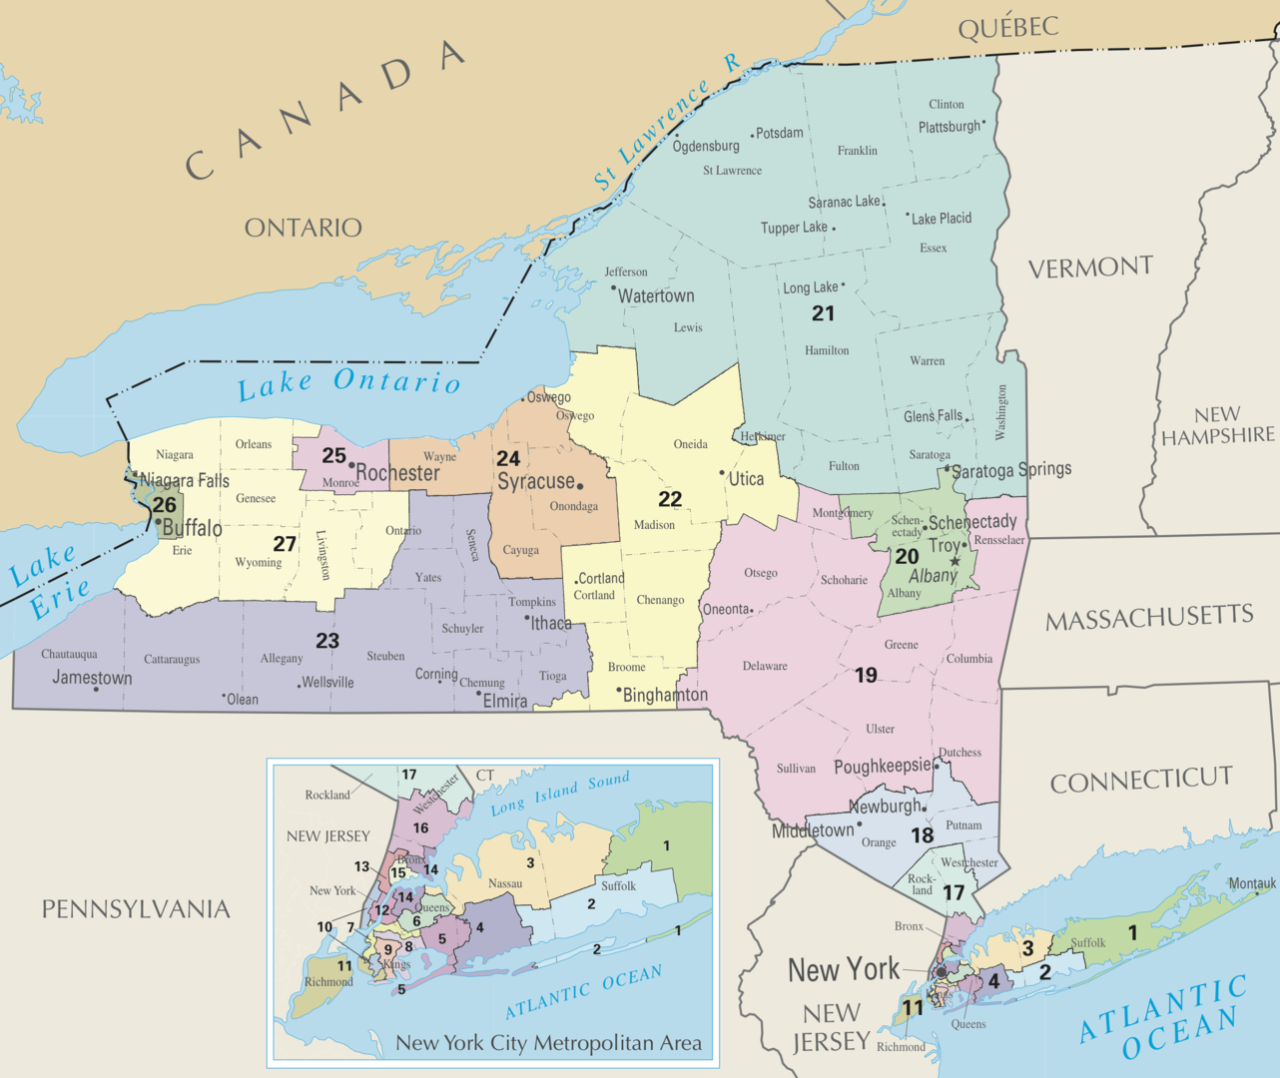 NY Congressional_districts_from_2013_to_2022.png